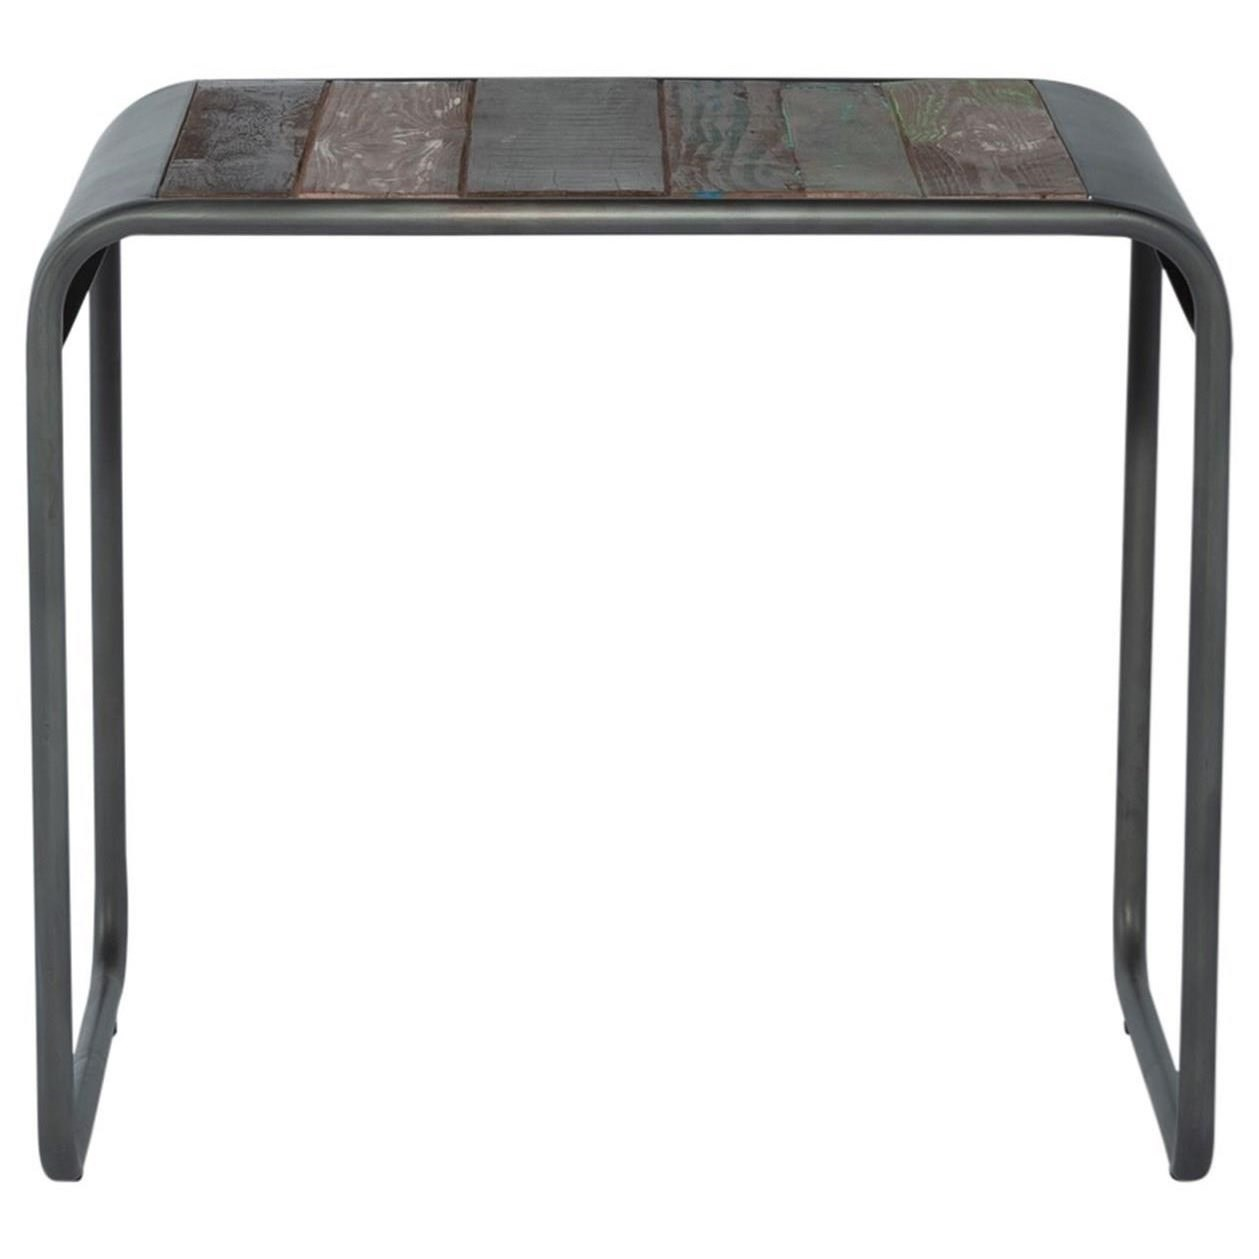 SHEFFIELD Nesting Tables by Libby at Walker's Furniture